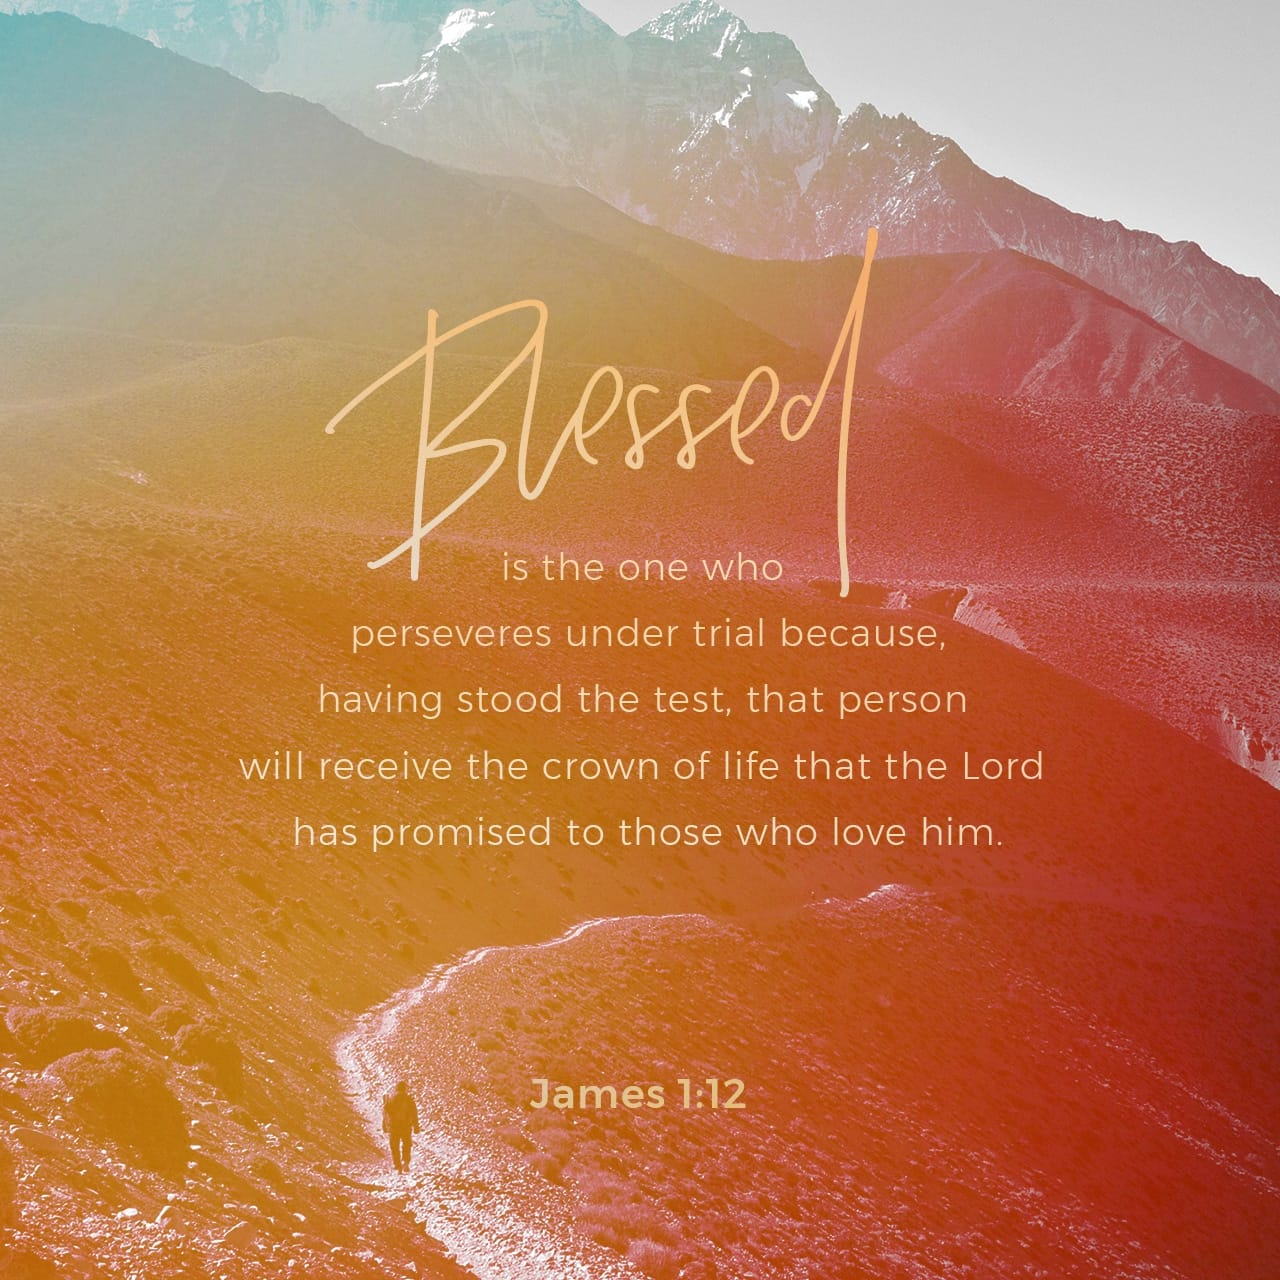 James 1:12 Blessed is the one who perseveres under trial because, having stood the test, that person will receive the crown of life that the Lord has promised to those who love him. | New International Version (NIV)